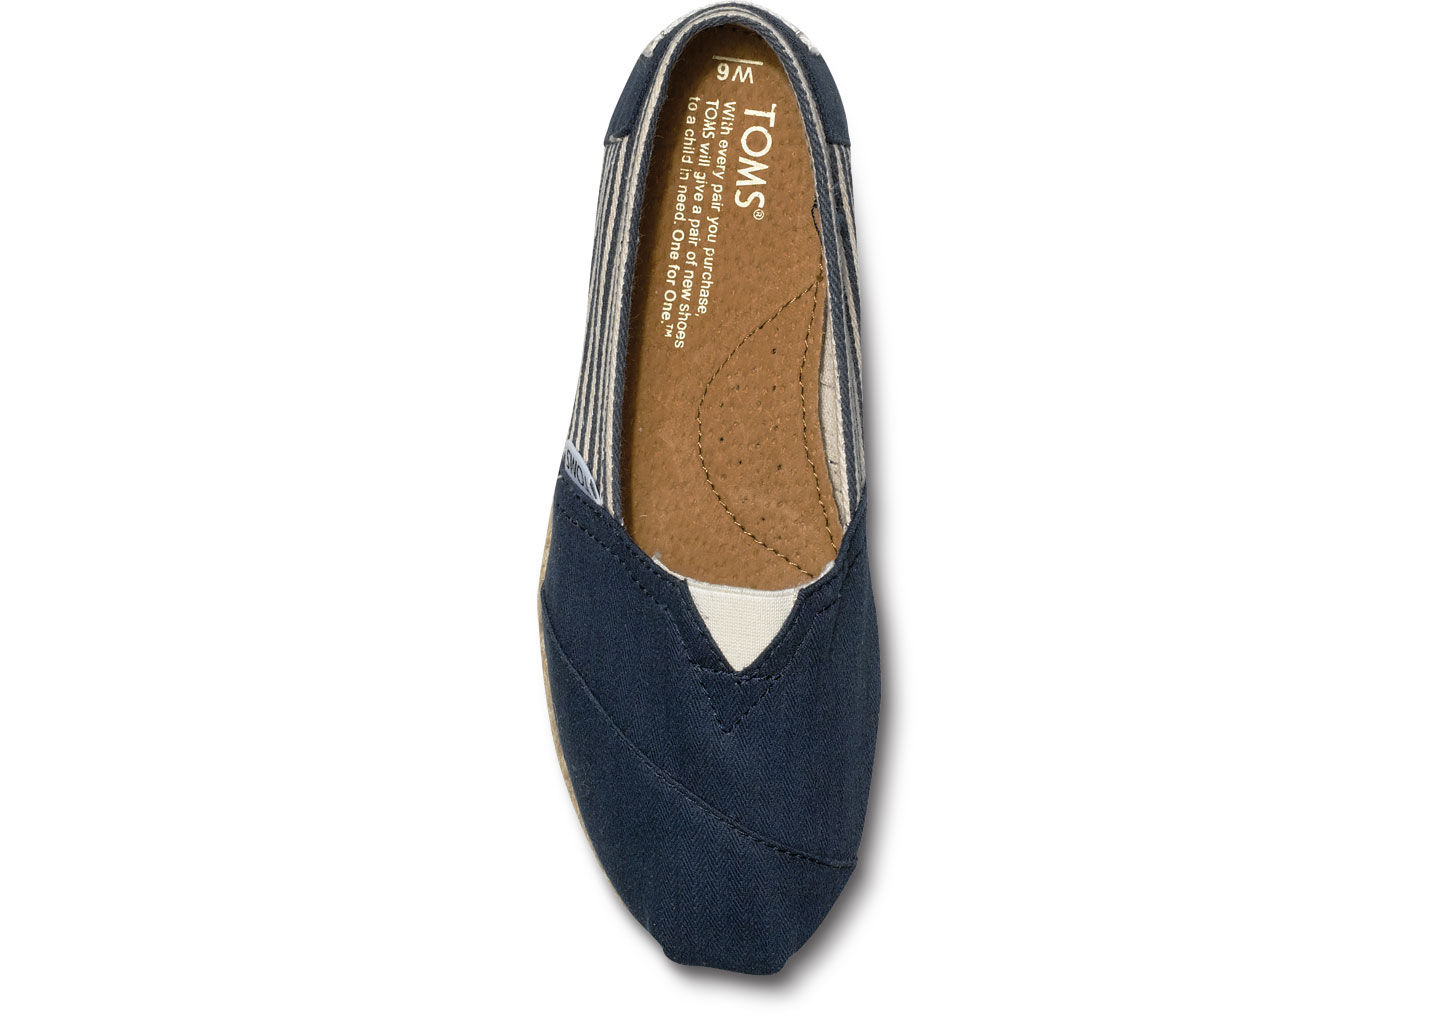 b03f4f594a8 TOMS University Navy Rope Sole Women'S Classics in Blue - Lyst